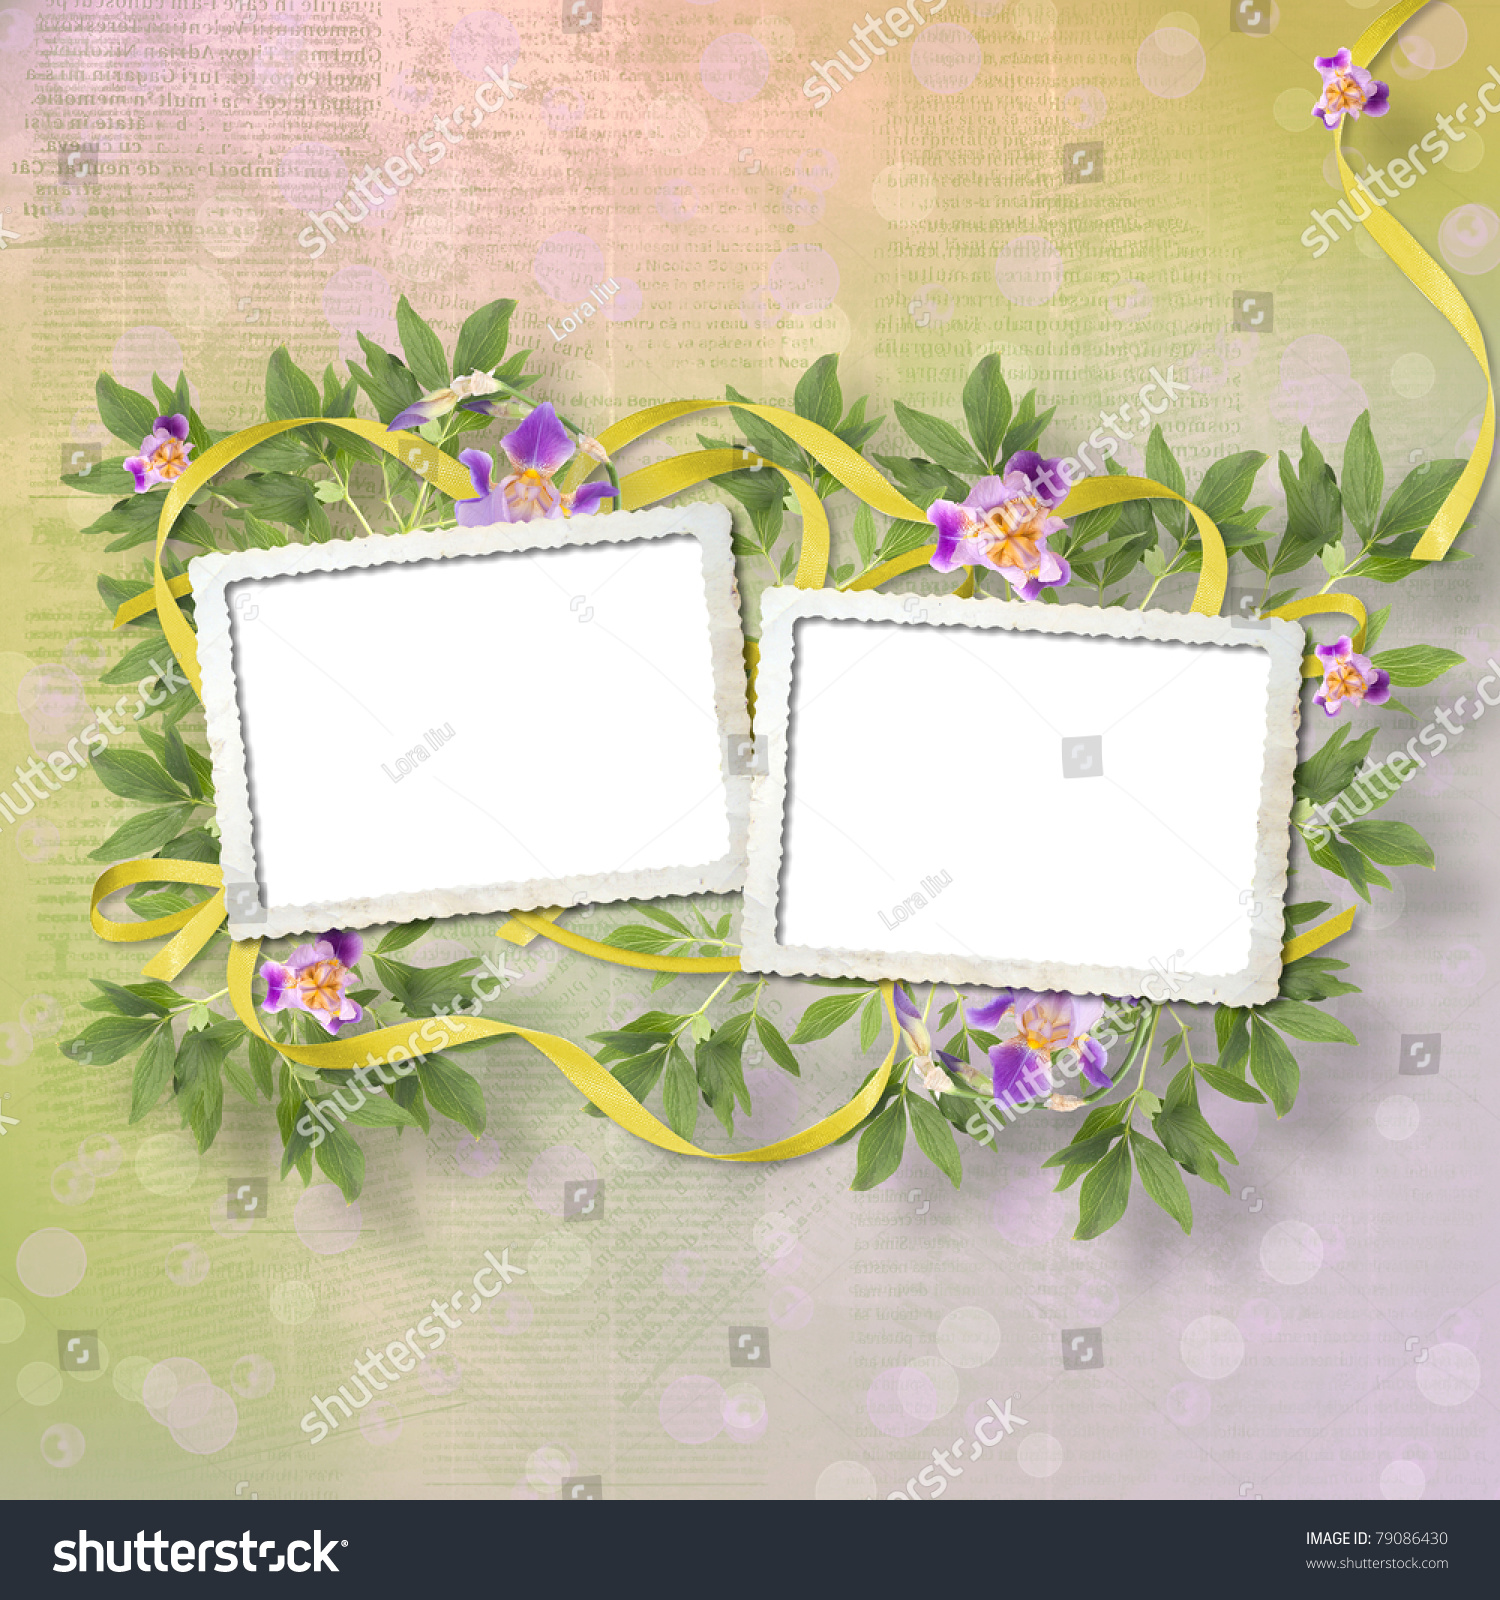 Old newspaper background with frame and bunch of flower | EZ Canvas